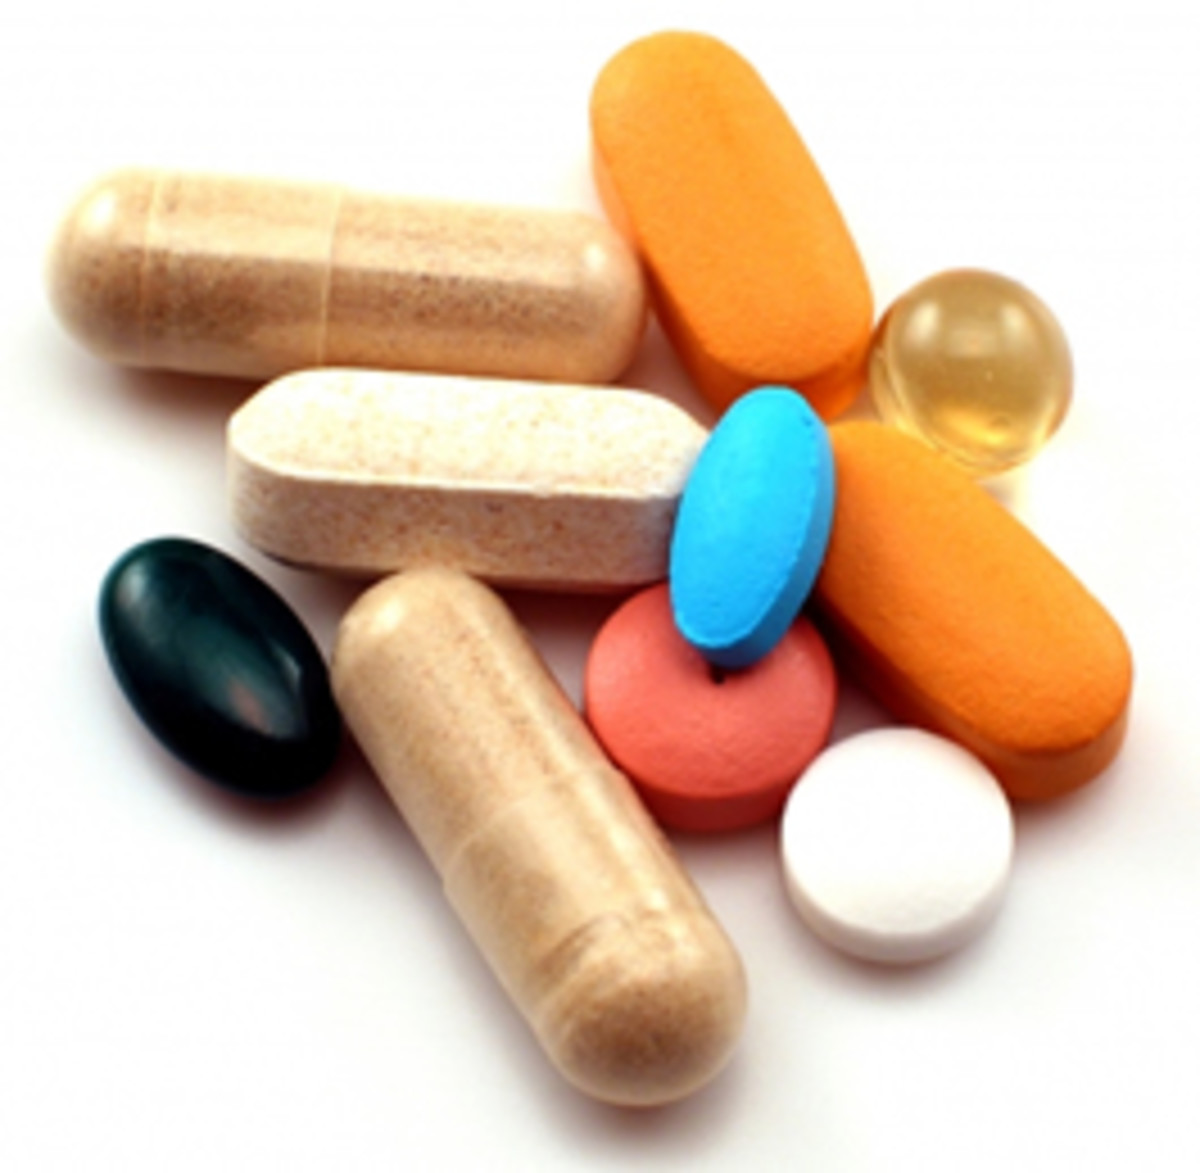 Taking vitamin supplements can help to replenish vitamins that may be low because of an unbalanced diet.